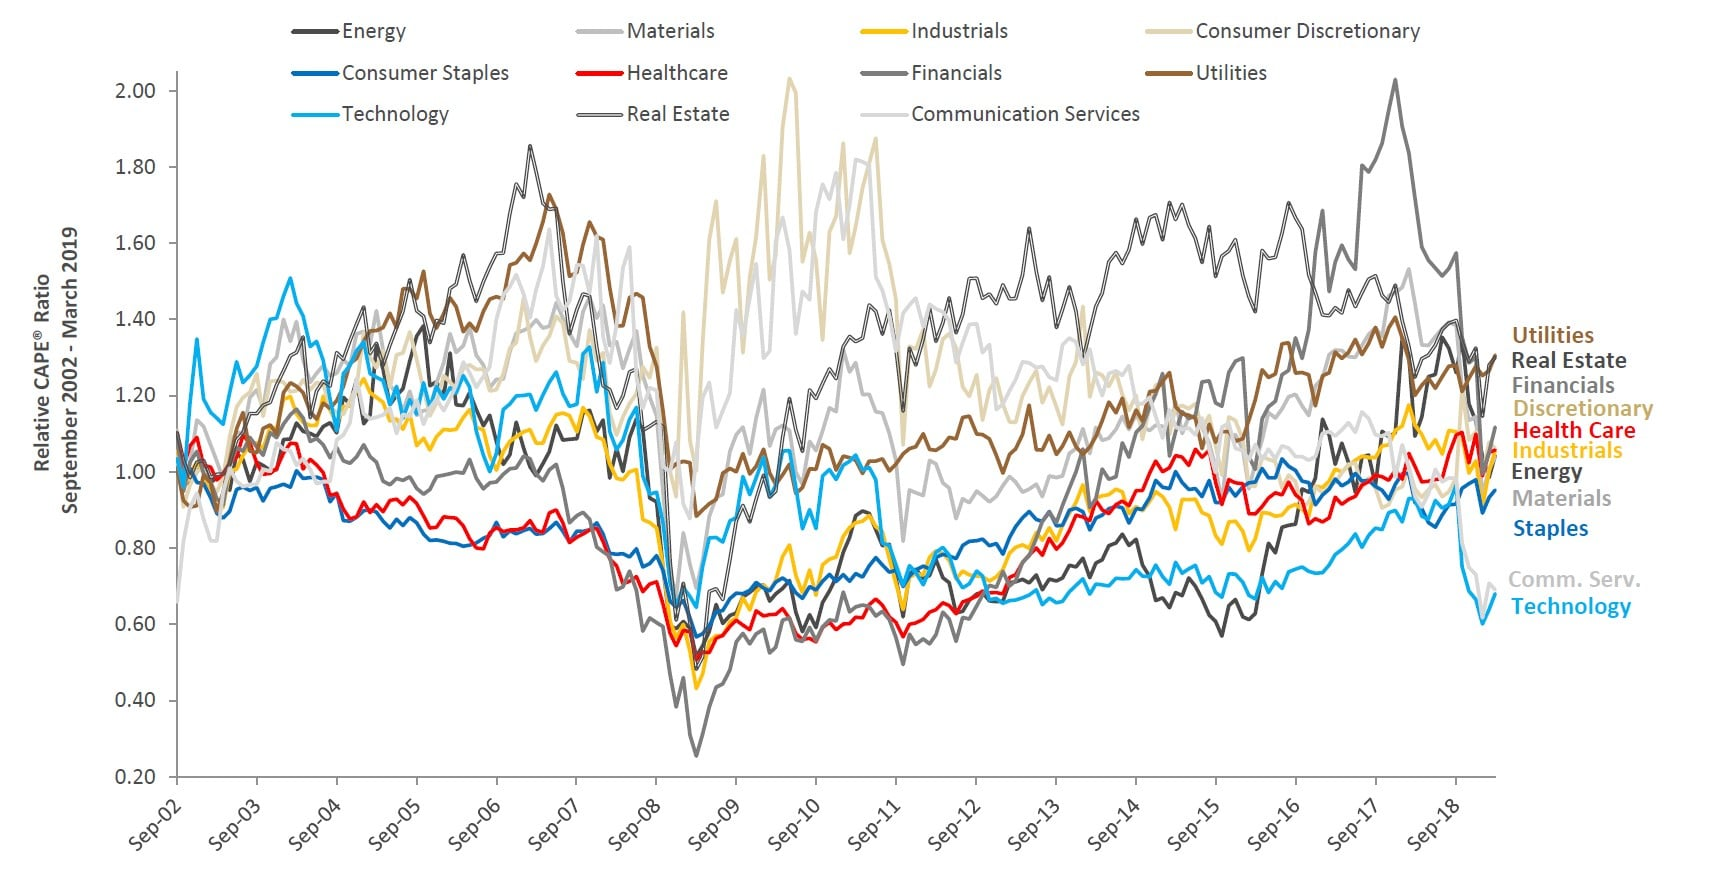 Cyclically Adjusted Price Earnings ratio